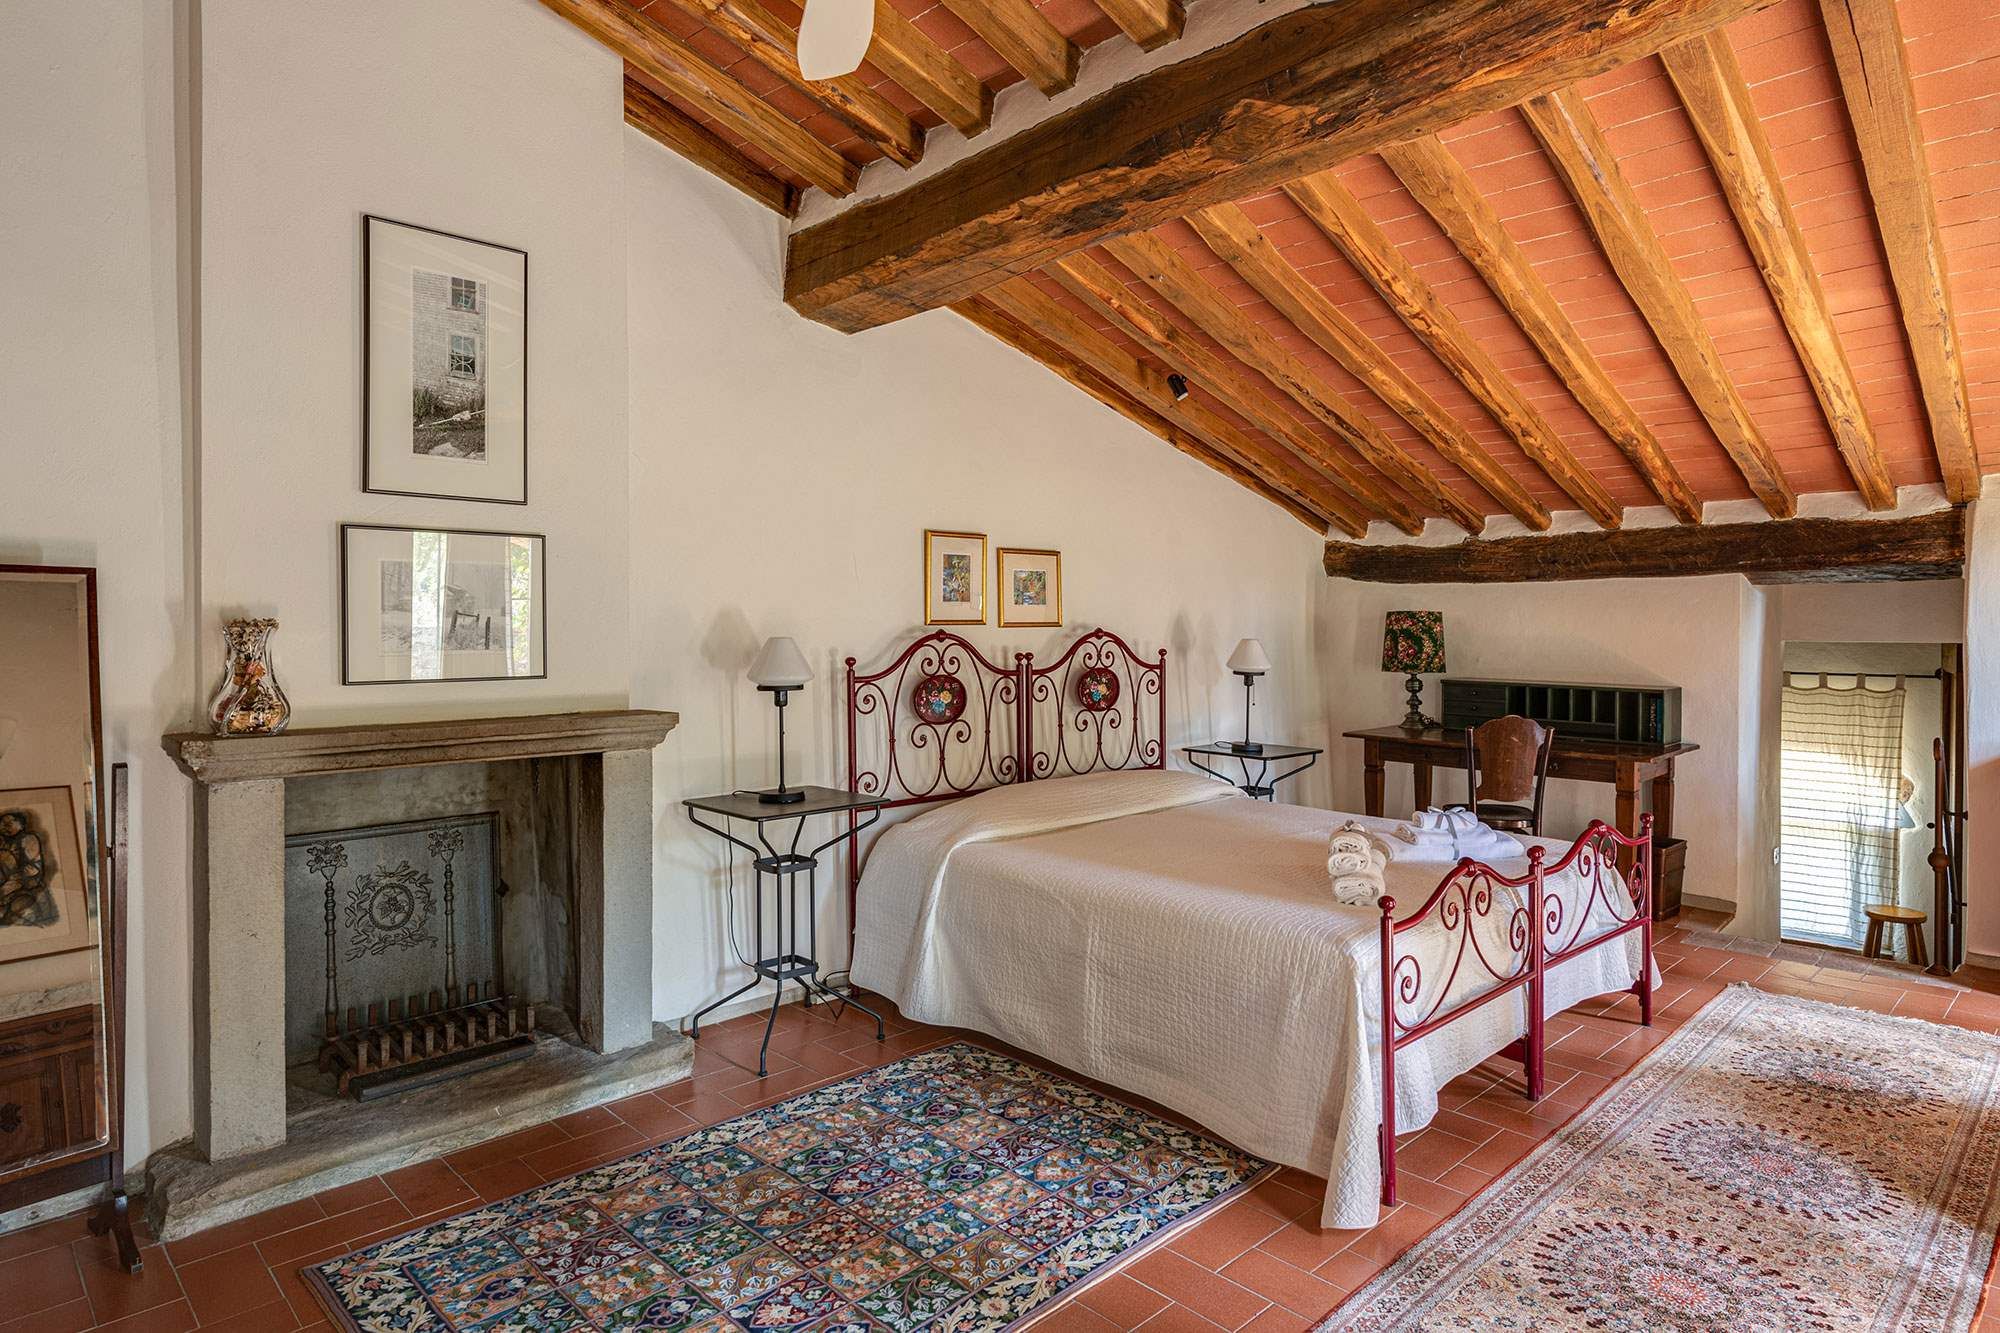 Villa Claudia, 6 Bedroom rate, 6 bedroom villa in Chianti & Countryside, Tuscany Photo #16